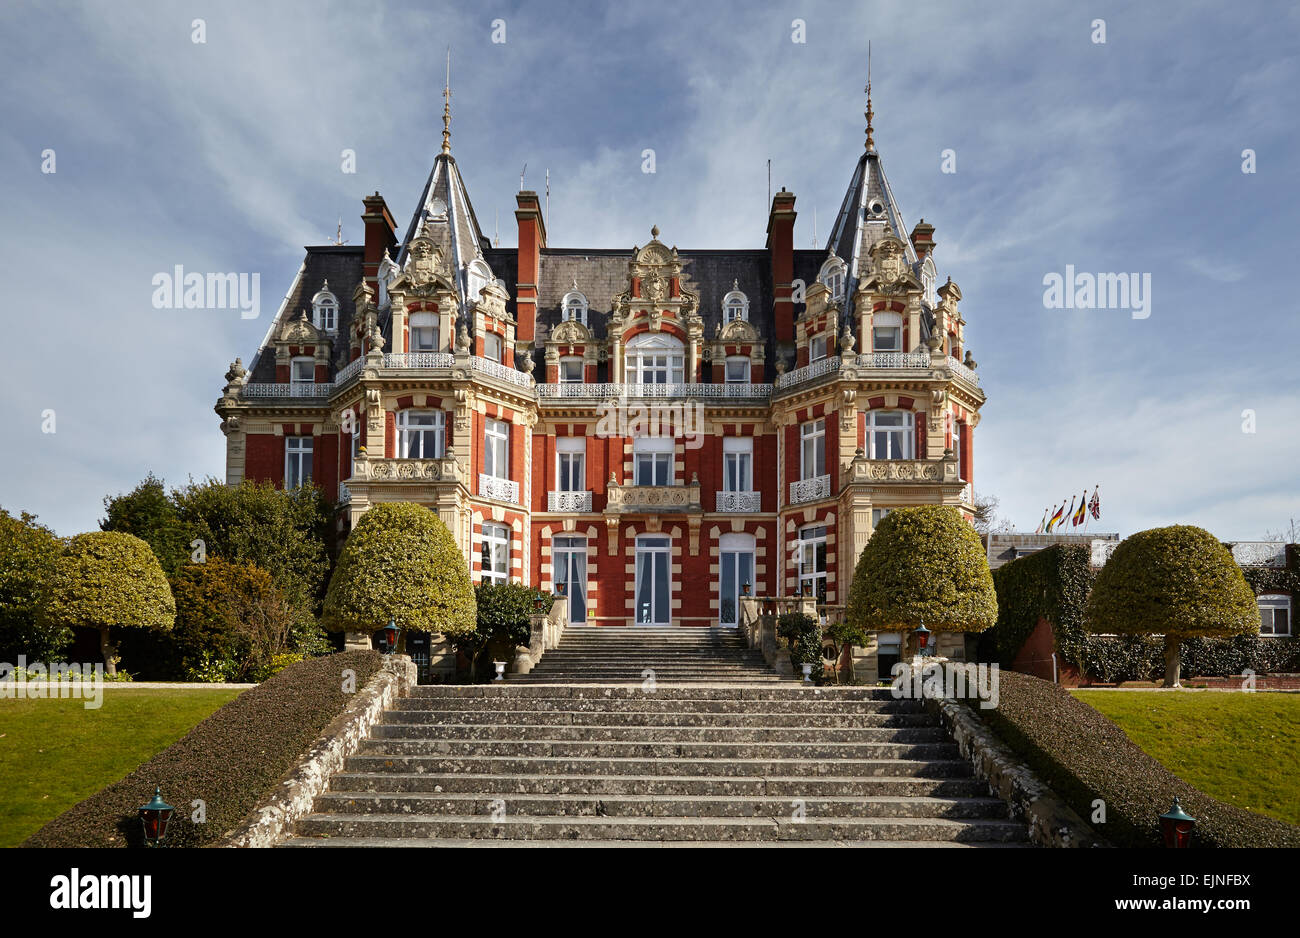 Chateau impney english hotel in style of french chateau for French chateau style